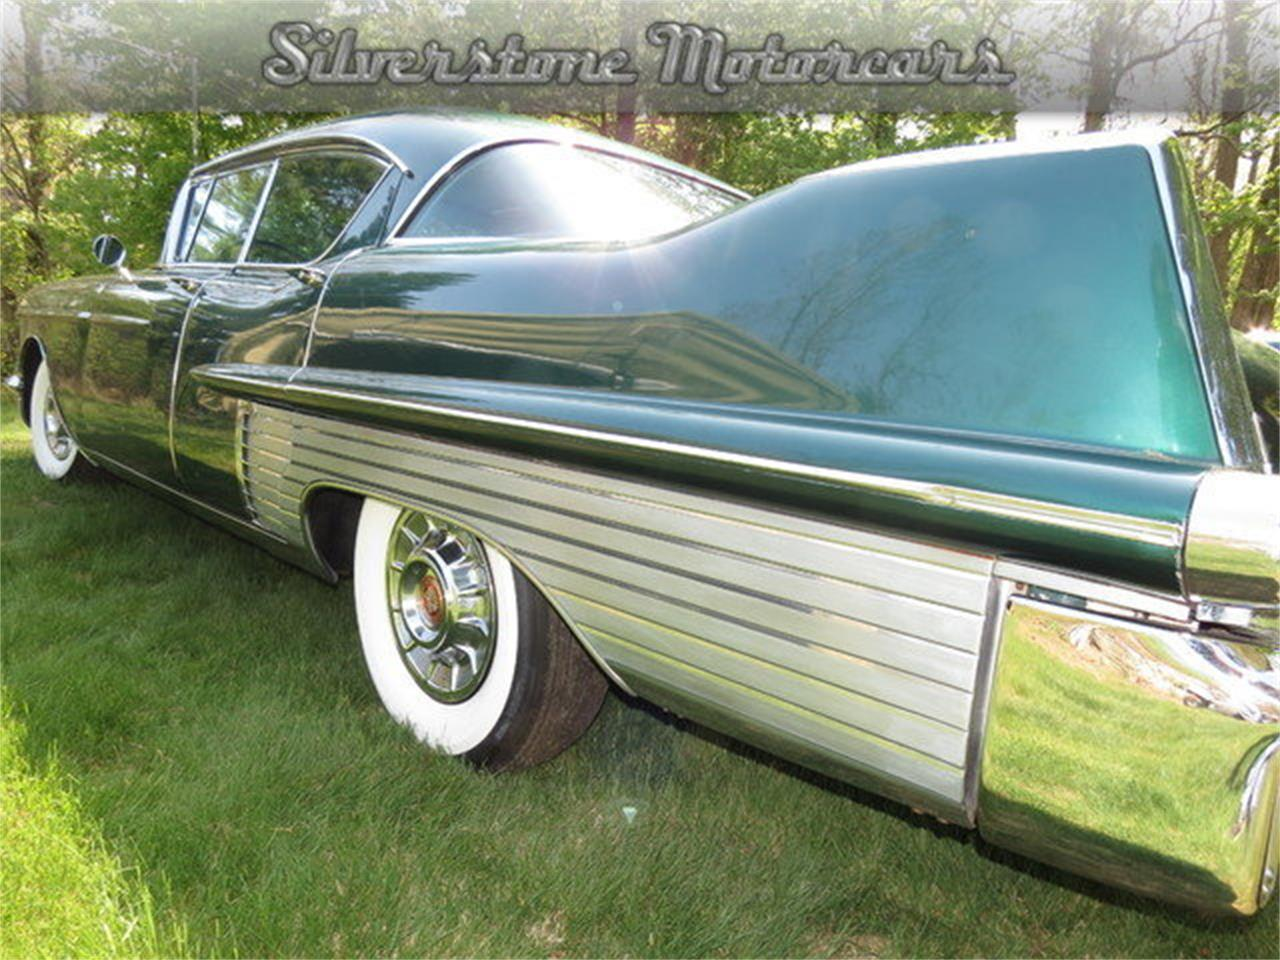 Large Picture of '57 Cadillac Fleetwood Offered by Silverstone Motorcars - F8GG